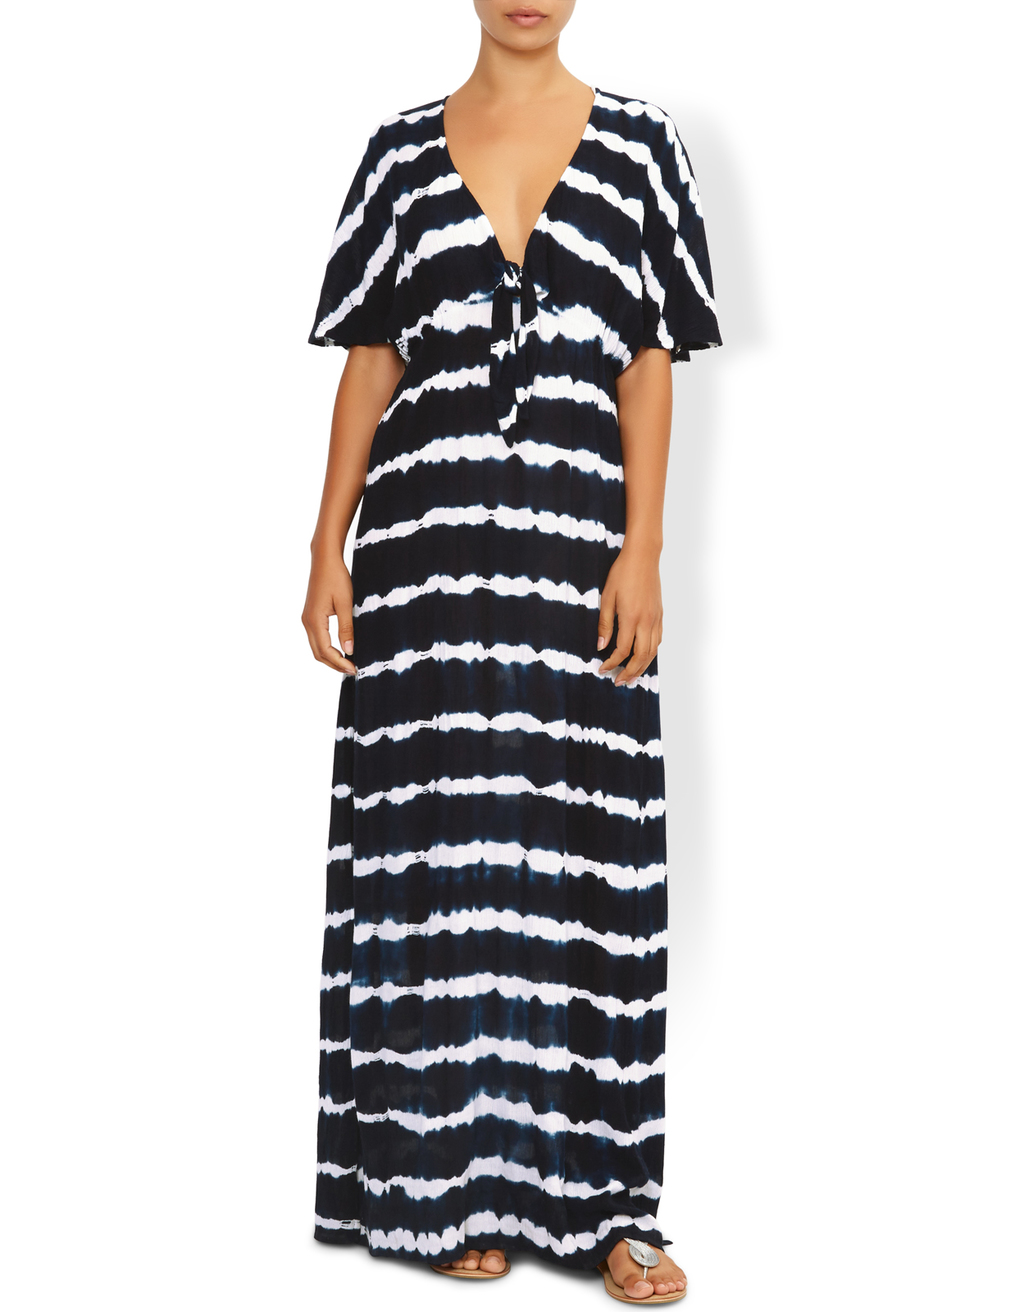 Lana Tie Dye Maxi Dress - neckline: low v-neck; fit: loose; pattern: horizontal stripes; style: maxi dress; secondary colour: white; predominant colour: black; occasions: casual; length: floor length; fibres: cotton - 100%; sleeve length: half sleeve; sleeve style: standard; texture group: cotton feel fabrics; pattern type: fabric; multicoloured: multicoloured; season: s/s 2016